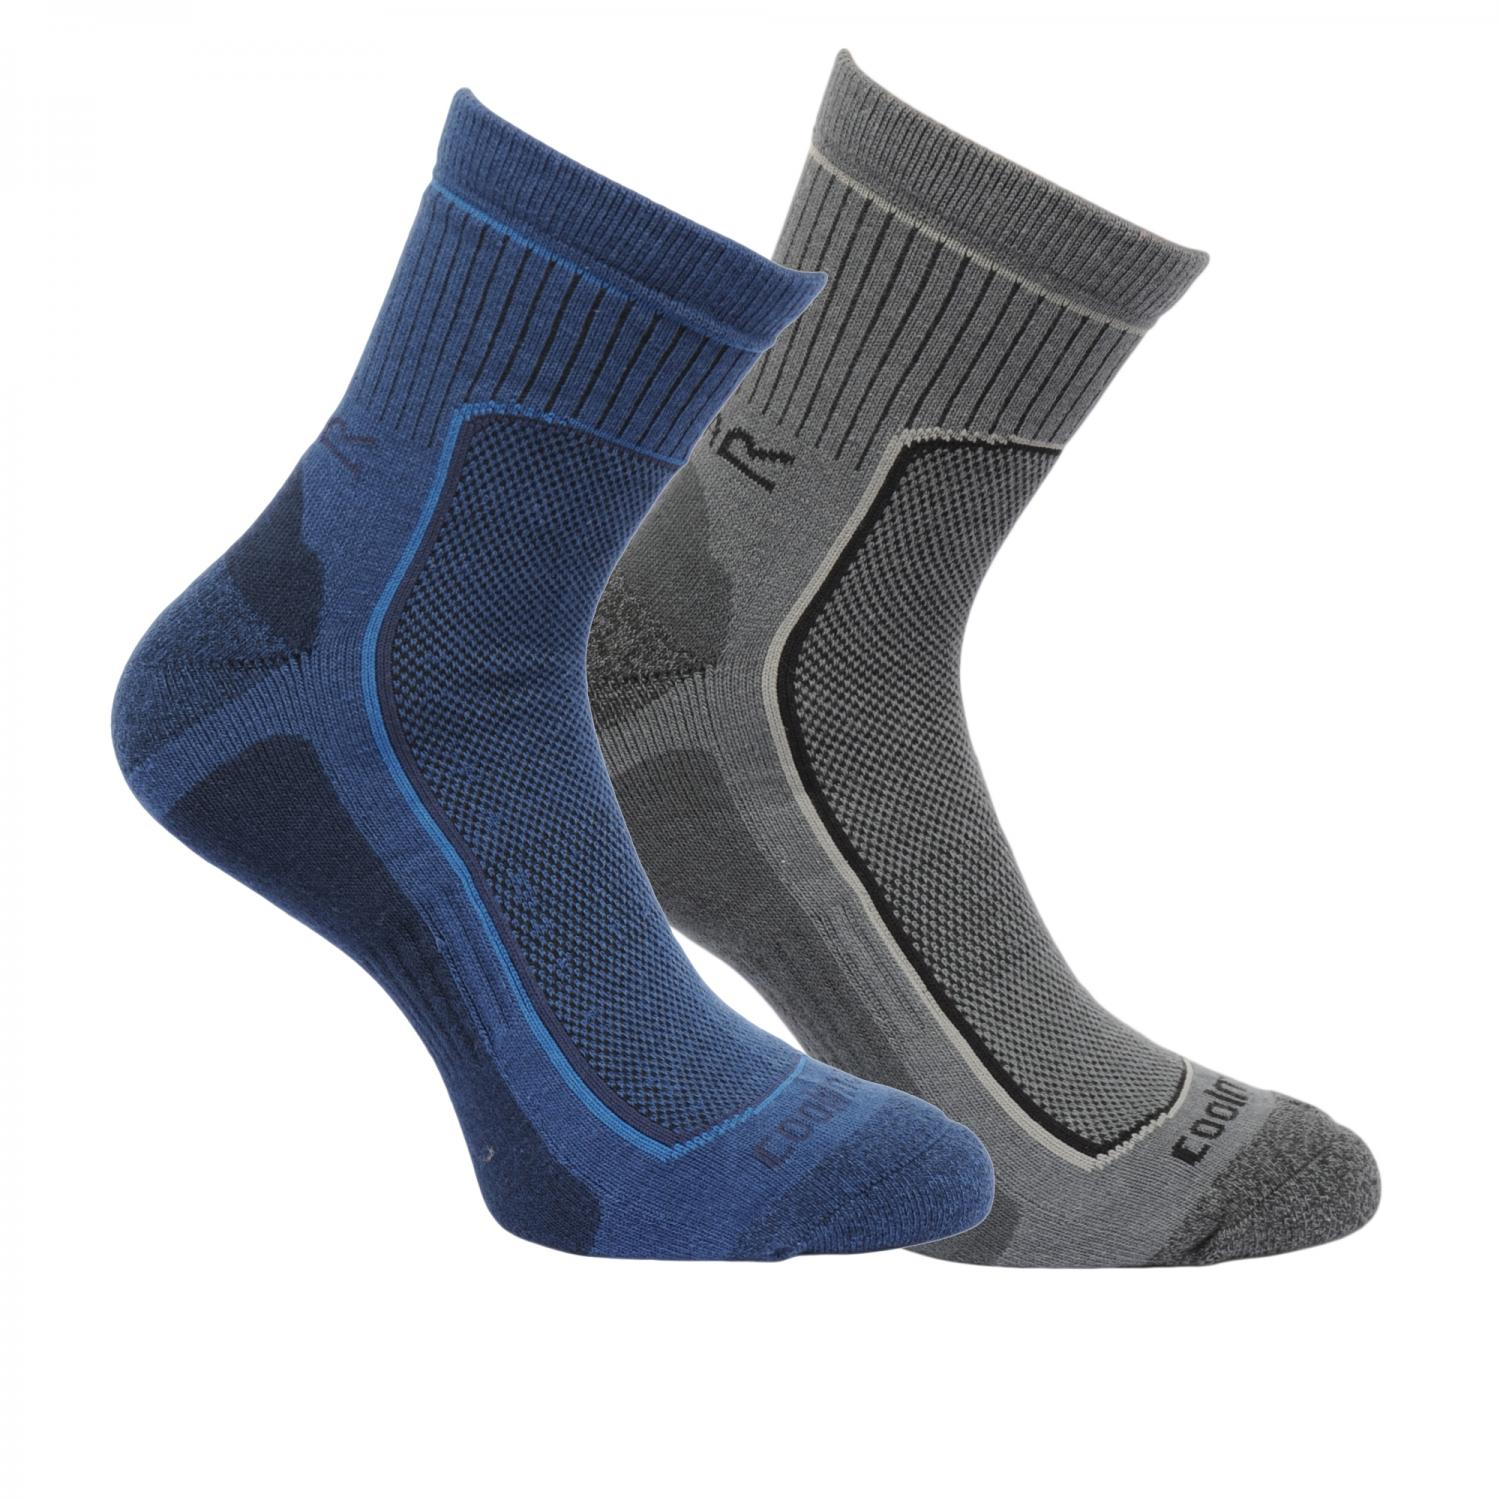 Mens 2 Pack Active Lifestyle Socks Dark Denim Granite